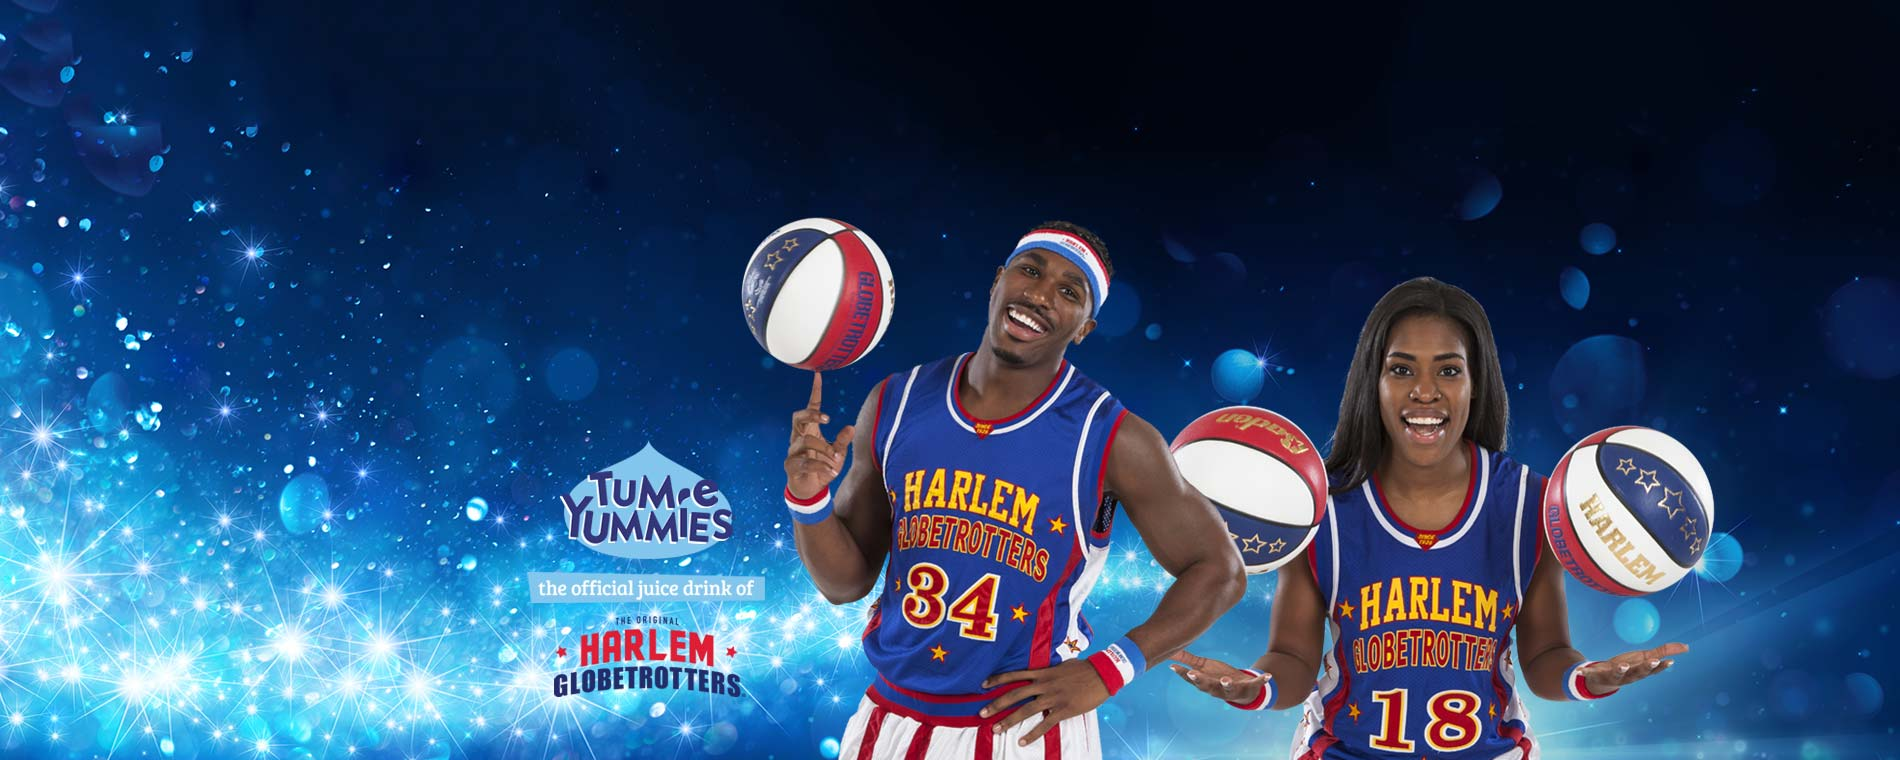 Harlem Globetrotters Presented by Tum-e Yummies